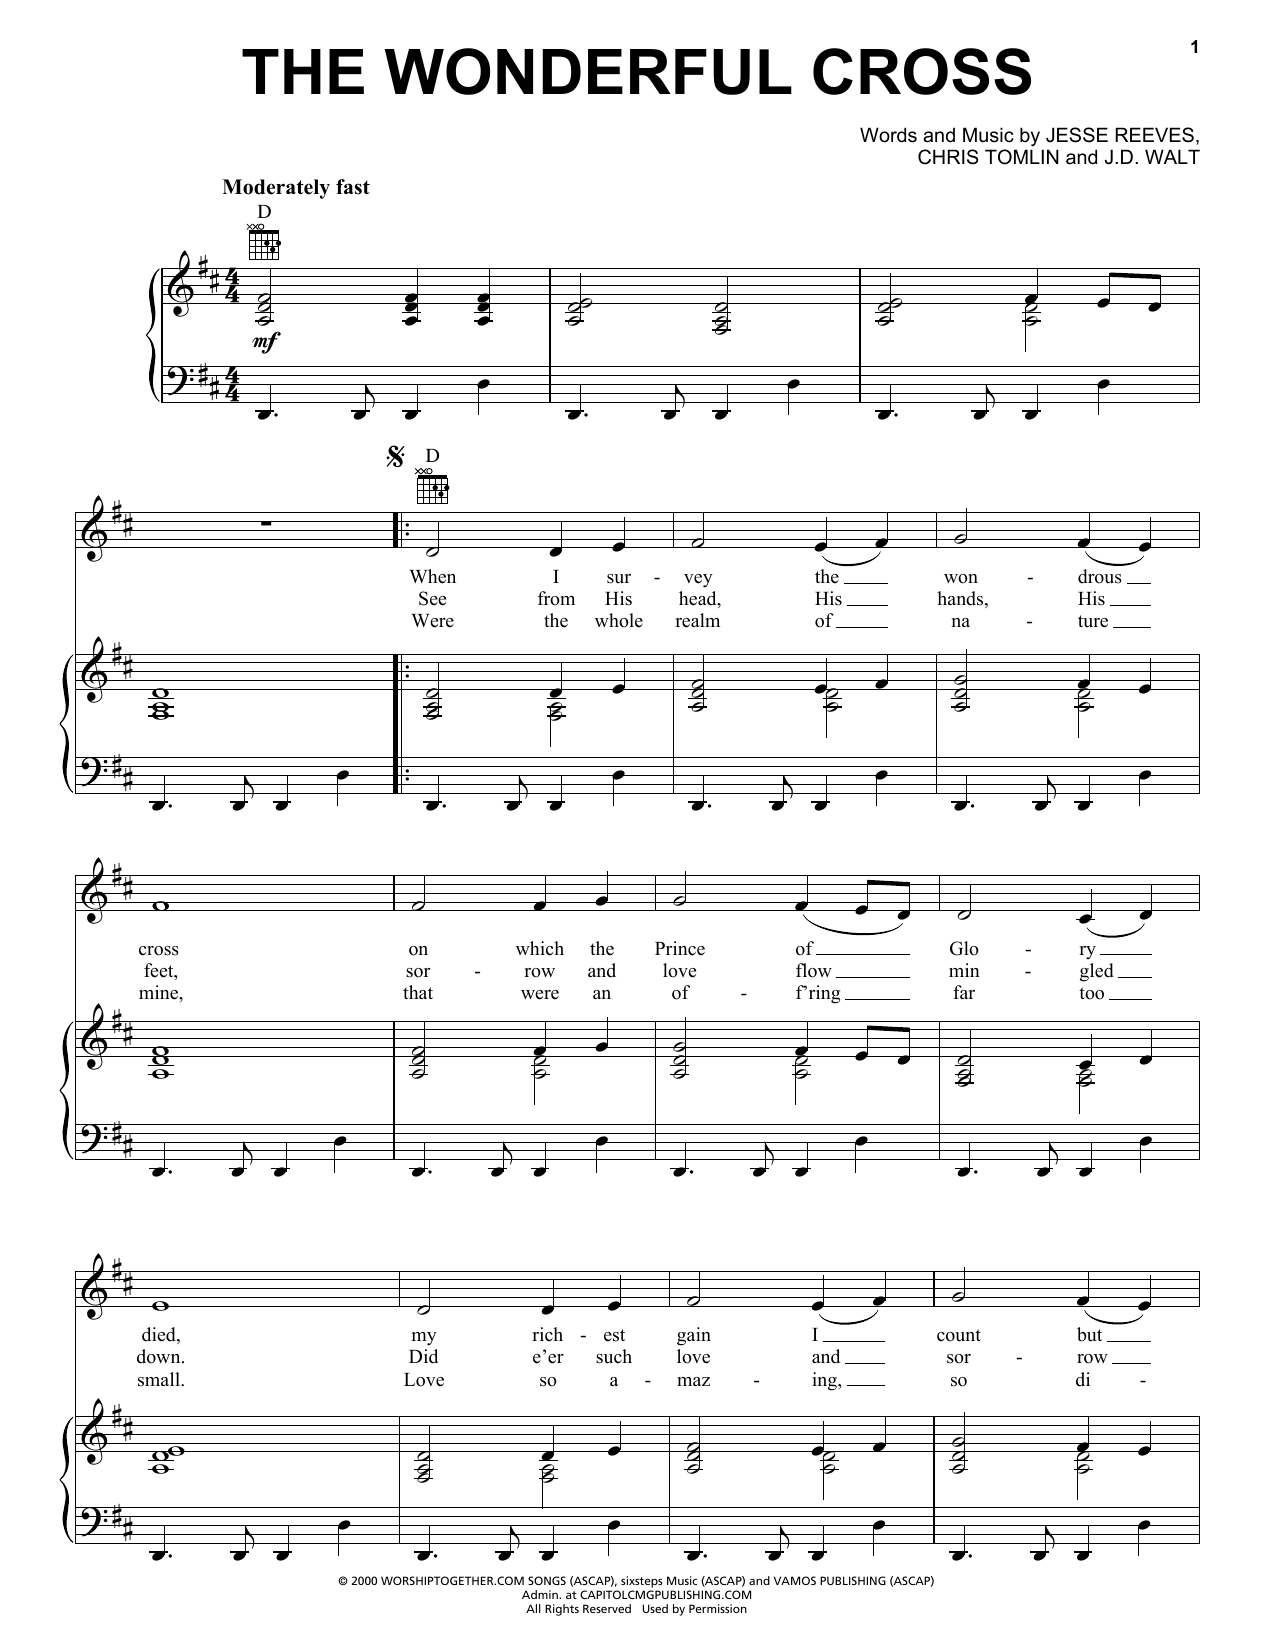 Chris Tomlin The Wonderful Cross sheet music notes and chords. Download Printable PDF.